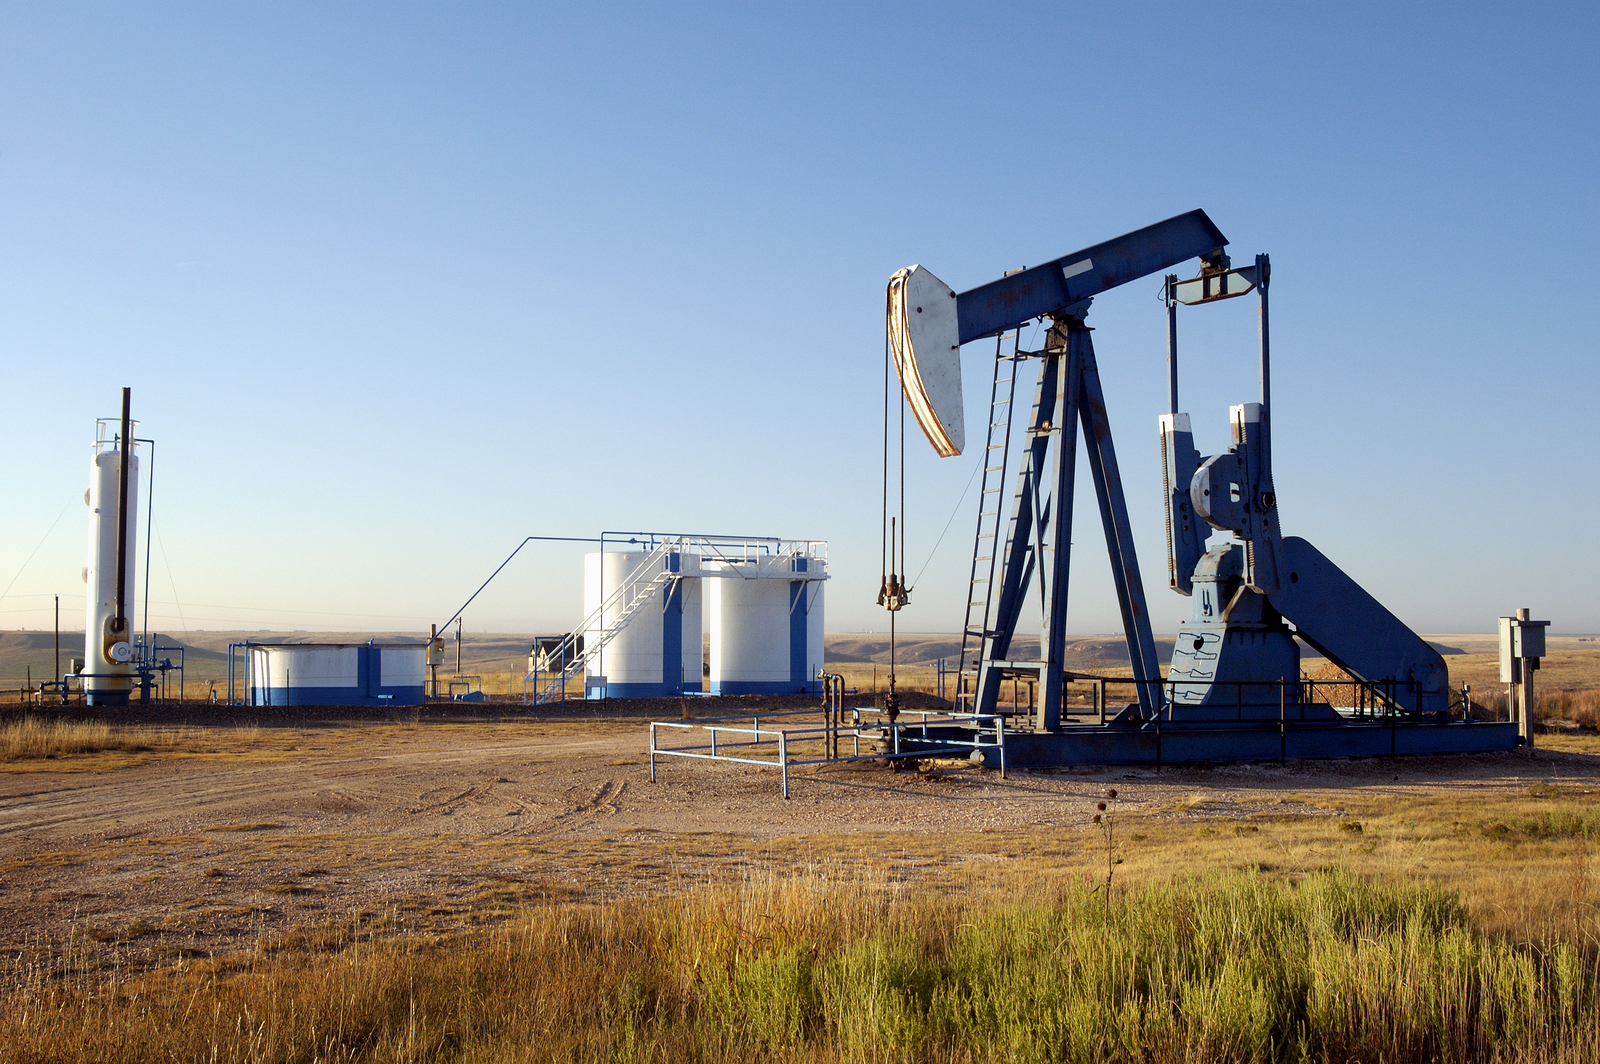 bigstock-Oil-Well-And-Storage-Tanks-307094.jpg